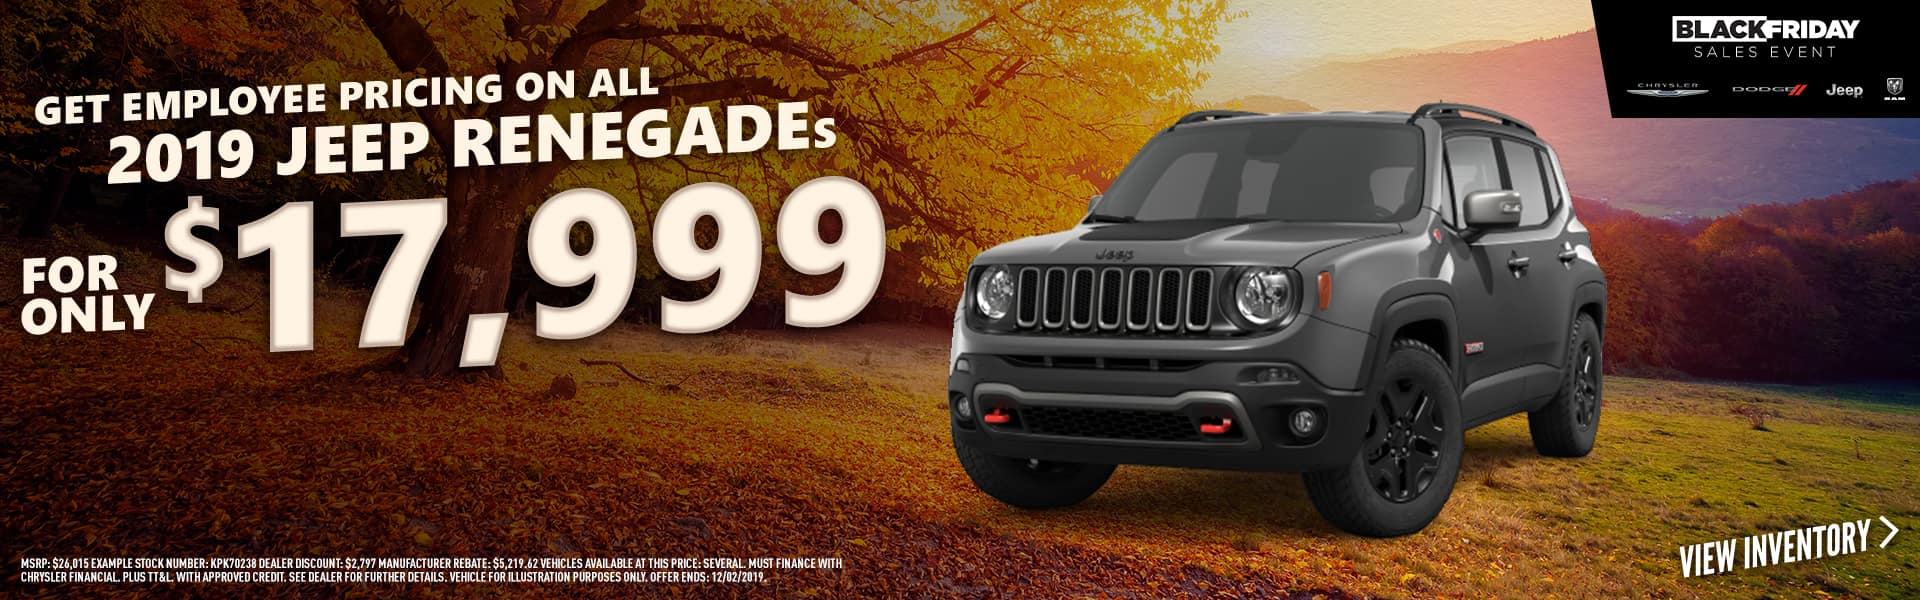 2019 Jeep Renegades - Remaining 2019 Jeep Renegades only $17,999 with employee pricing